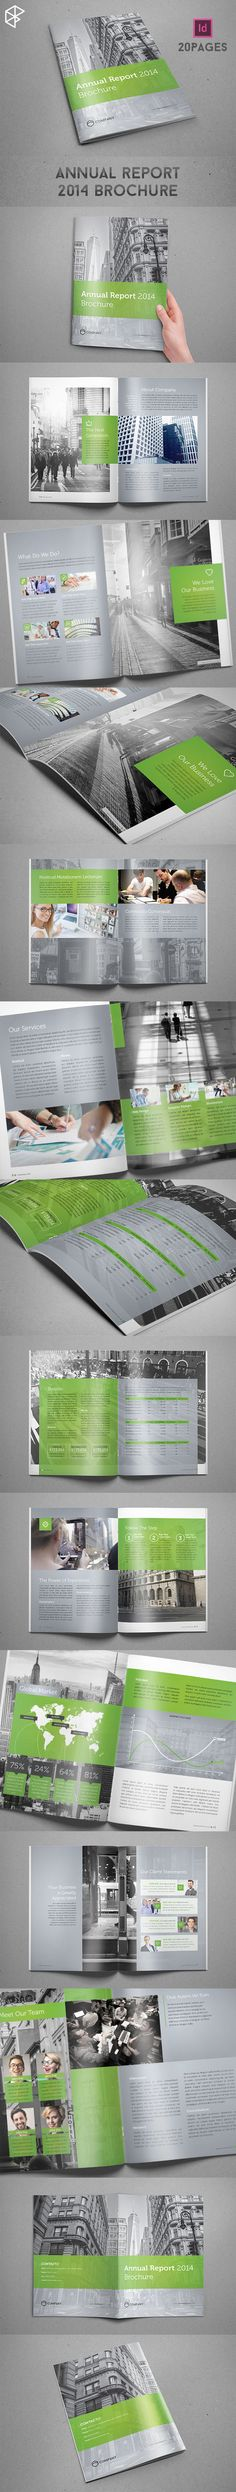 Annual Report 2014 Brochure on Behance